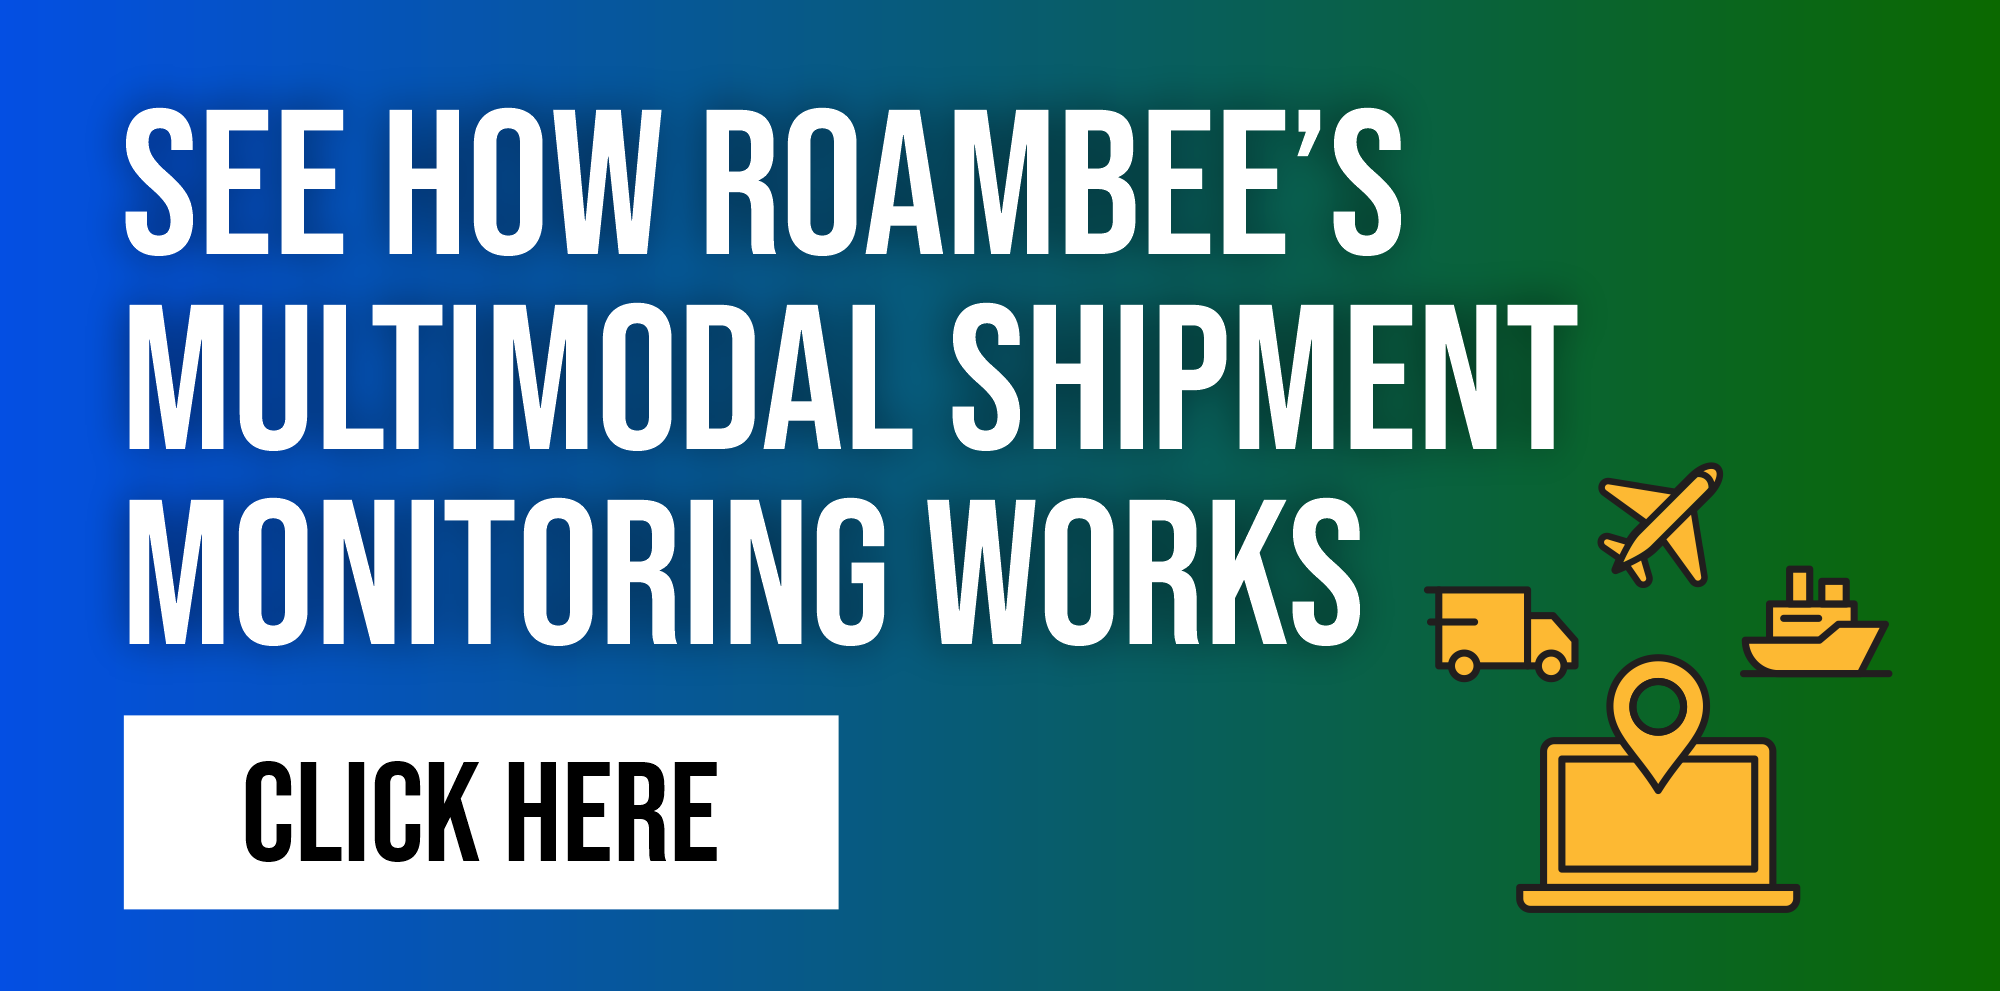 Intermodal Shipment Tracking and Multimodal Shipment Monitoring with Roambee